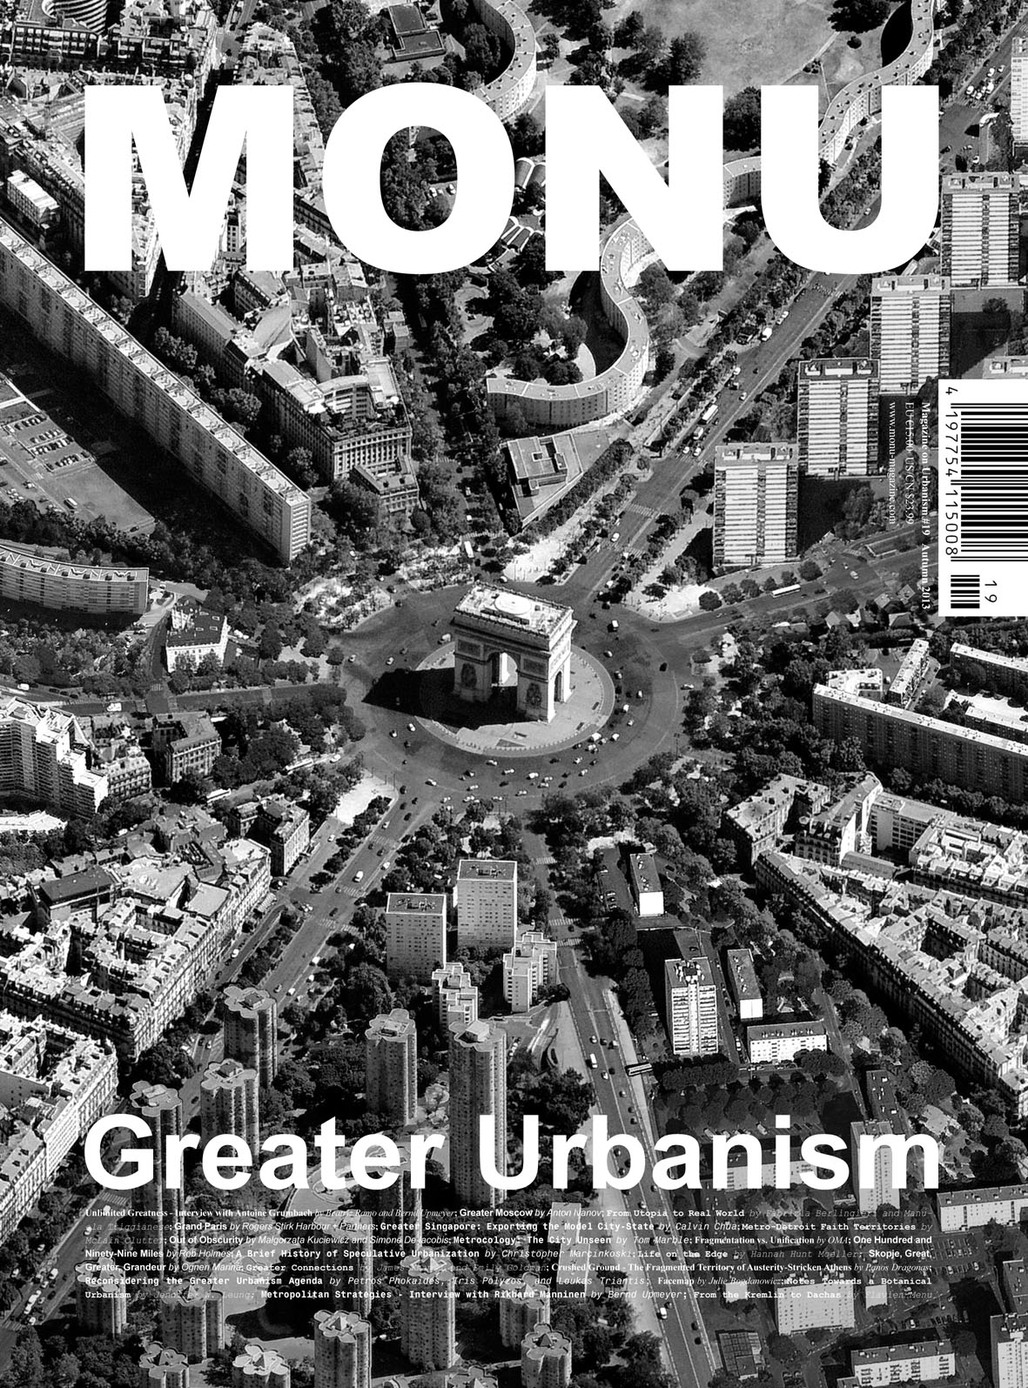 Cover Image of MONU #19: 'The 'Étoile' of Grand Paris – The Radiant Typologies of Greater Paris' is courtesy of STAR strategies + architecture (http://st-ar.nl/) and BOARD (http://b-o-a-r-d.nl/). The image, featuring the Arc de Triomphe surrounded by the typologies of Grand Paris, is...